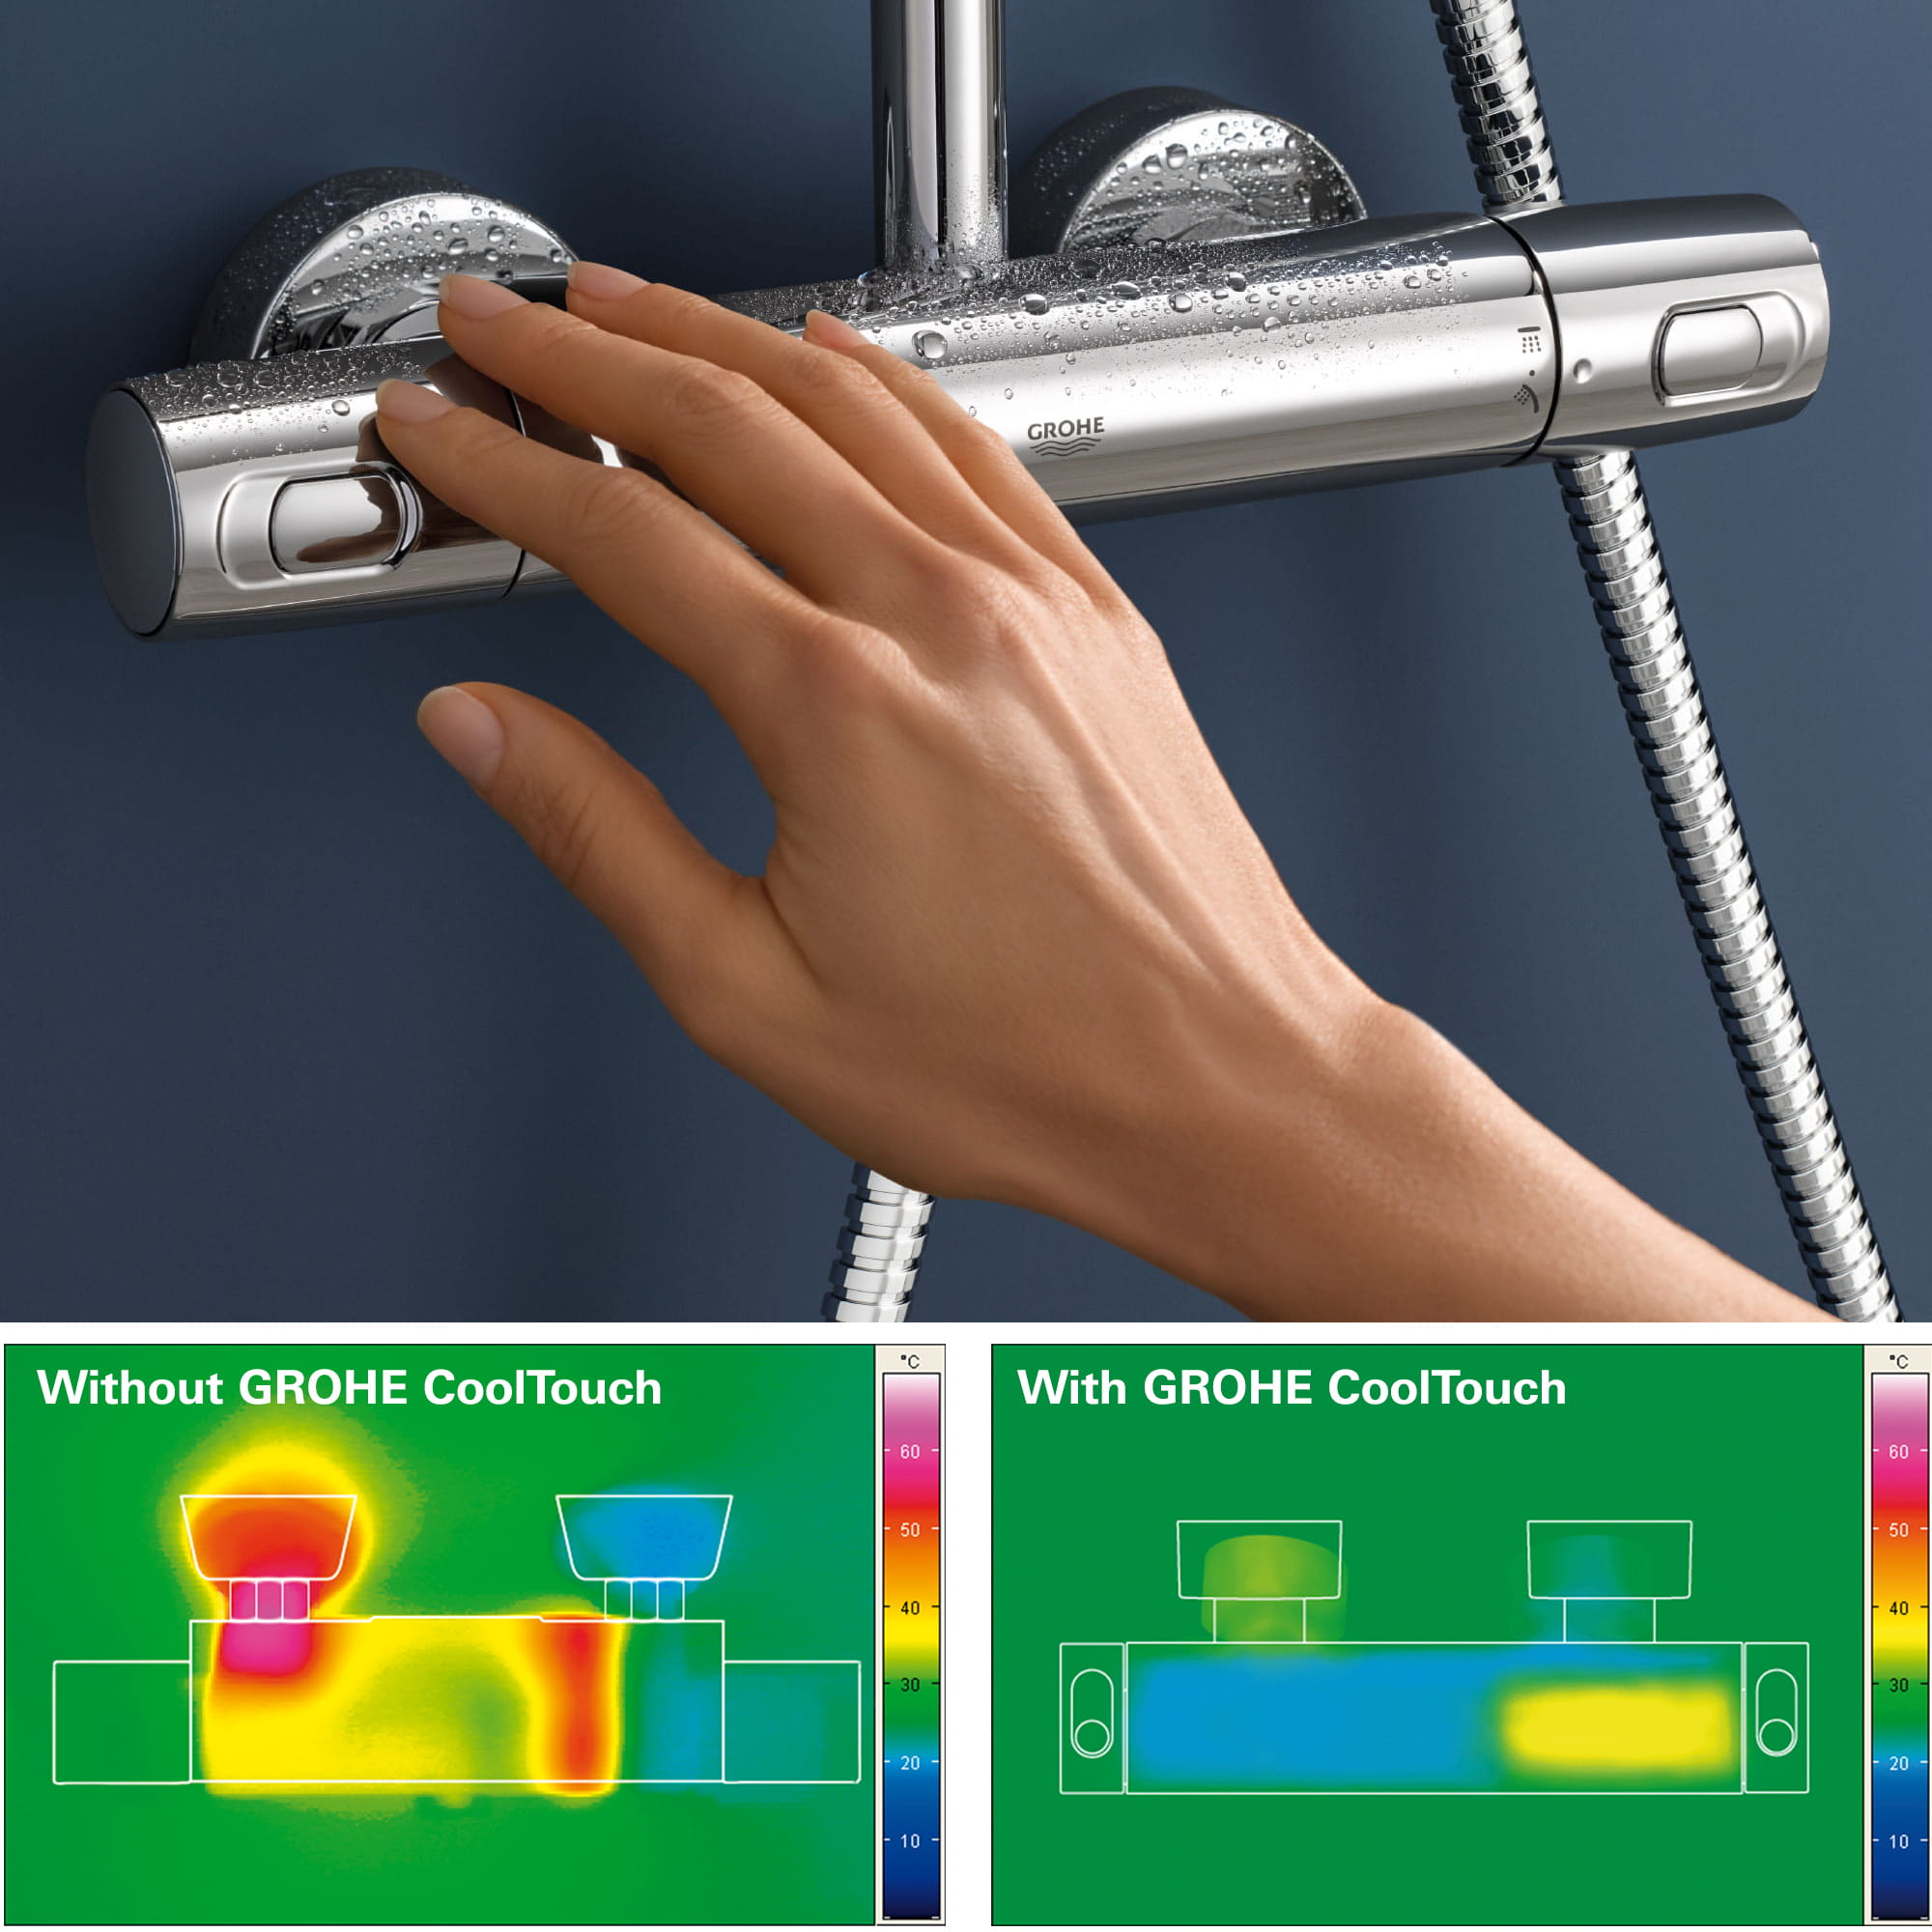 CoolTouch Technology